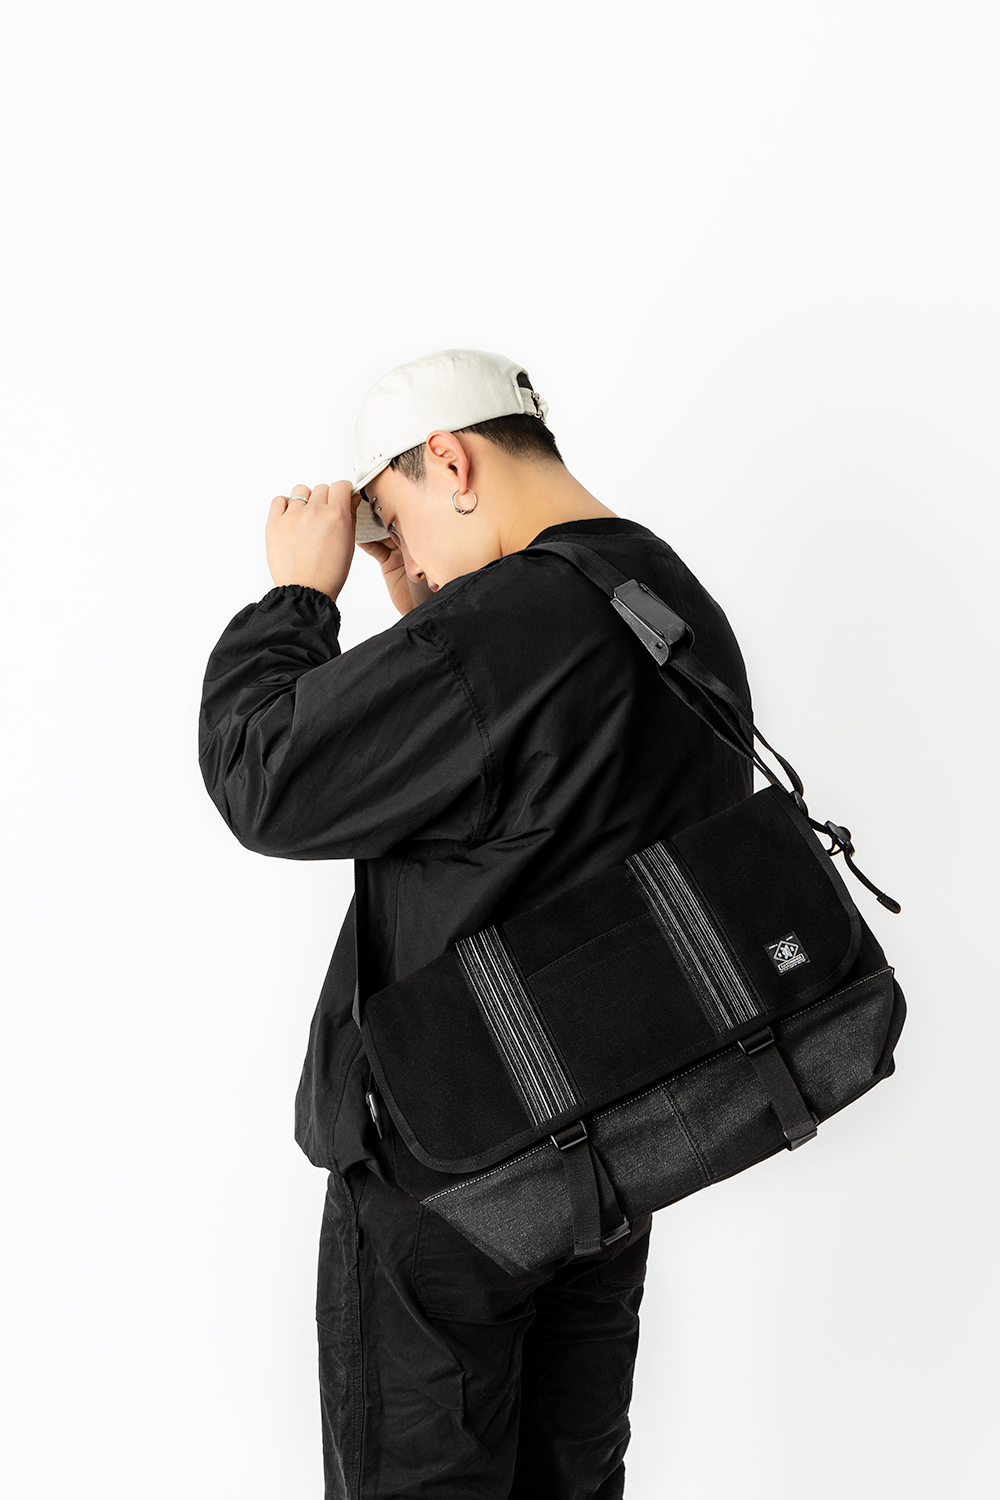 19 S/S MESSENGER BAG